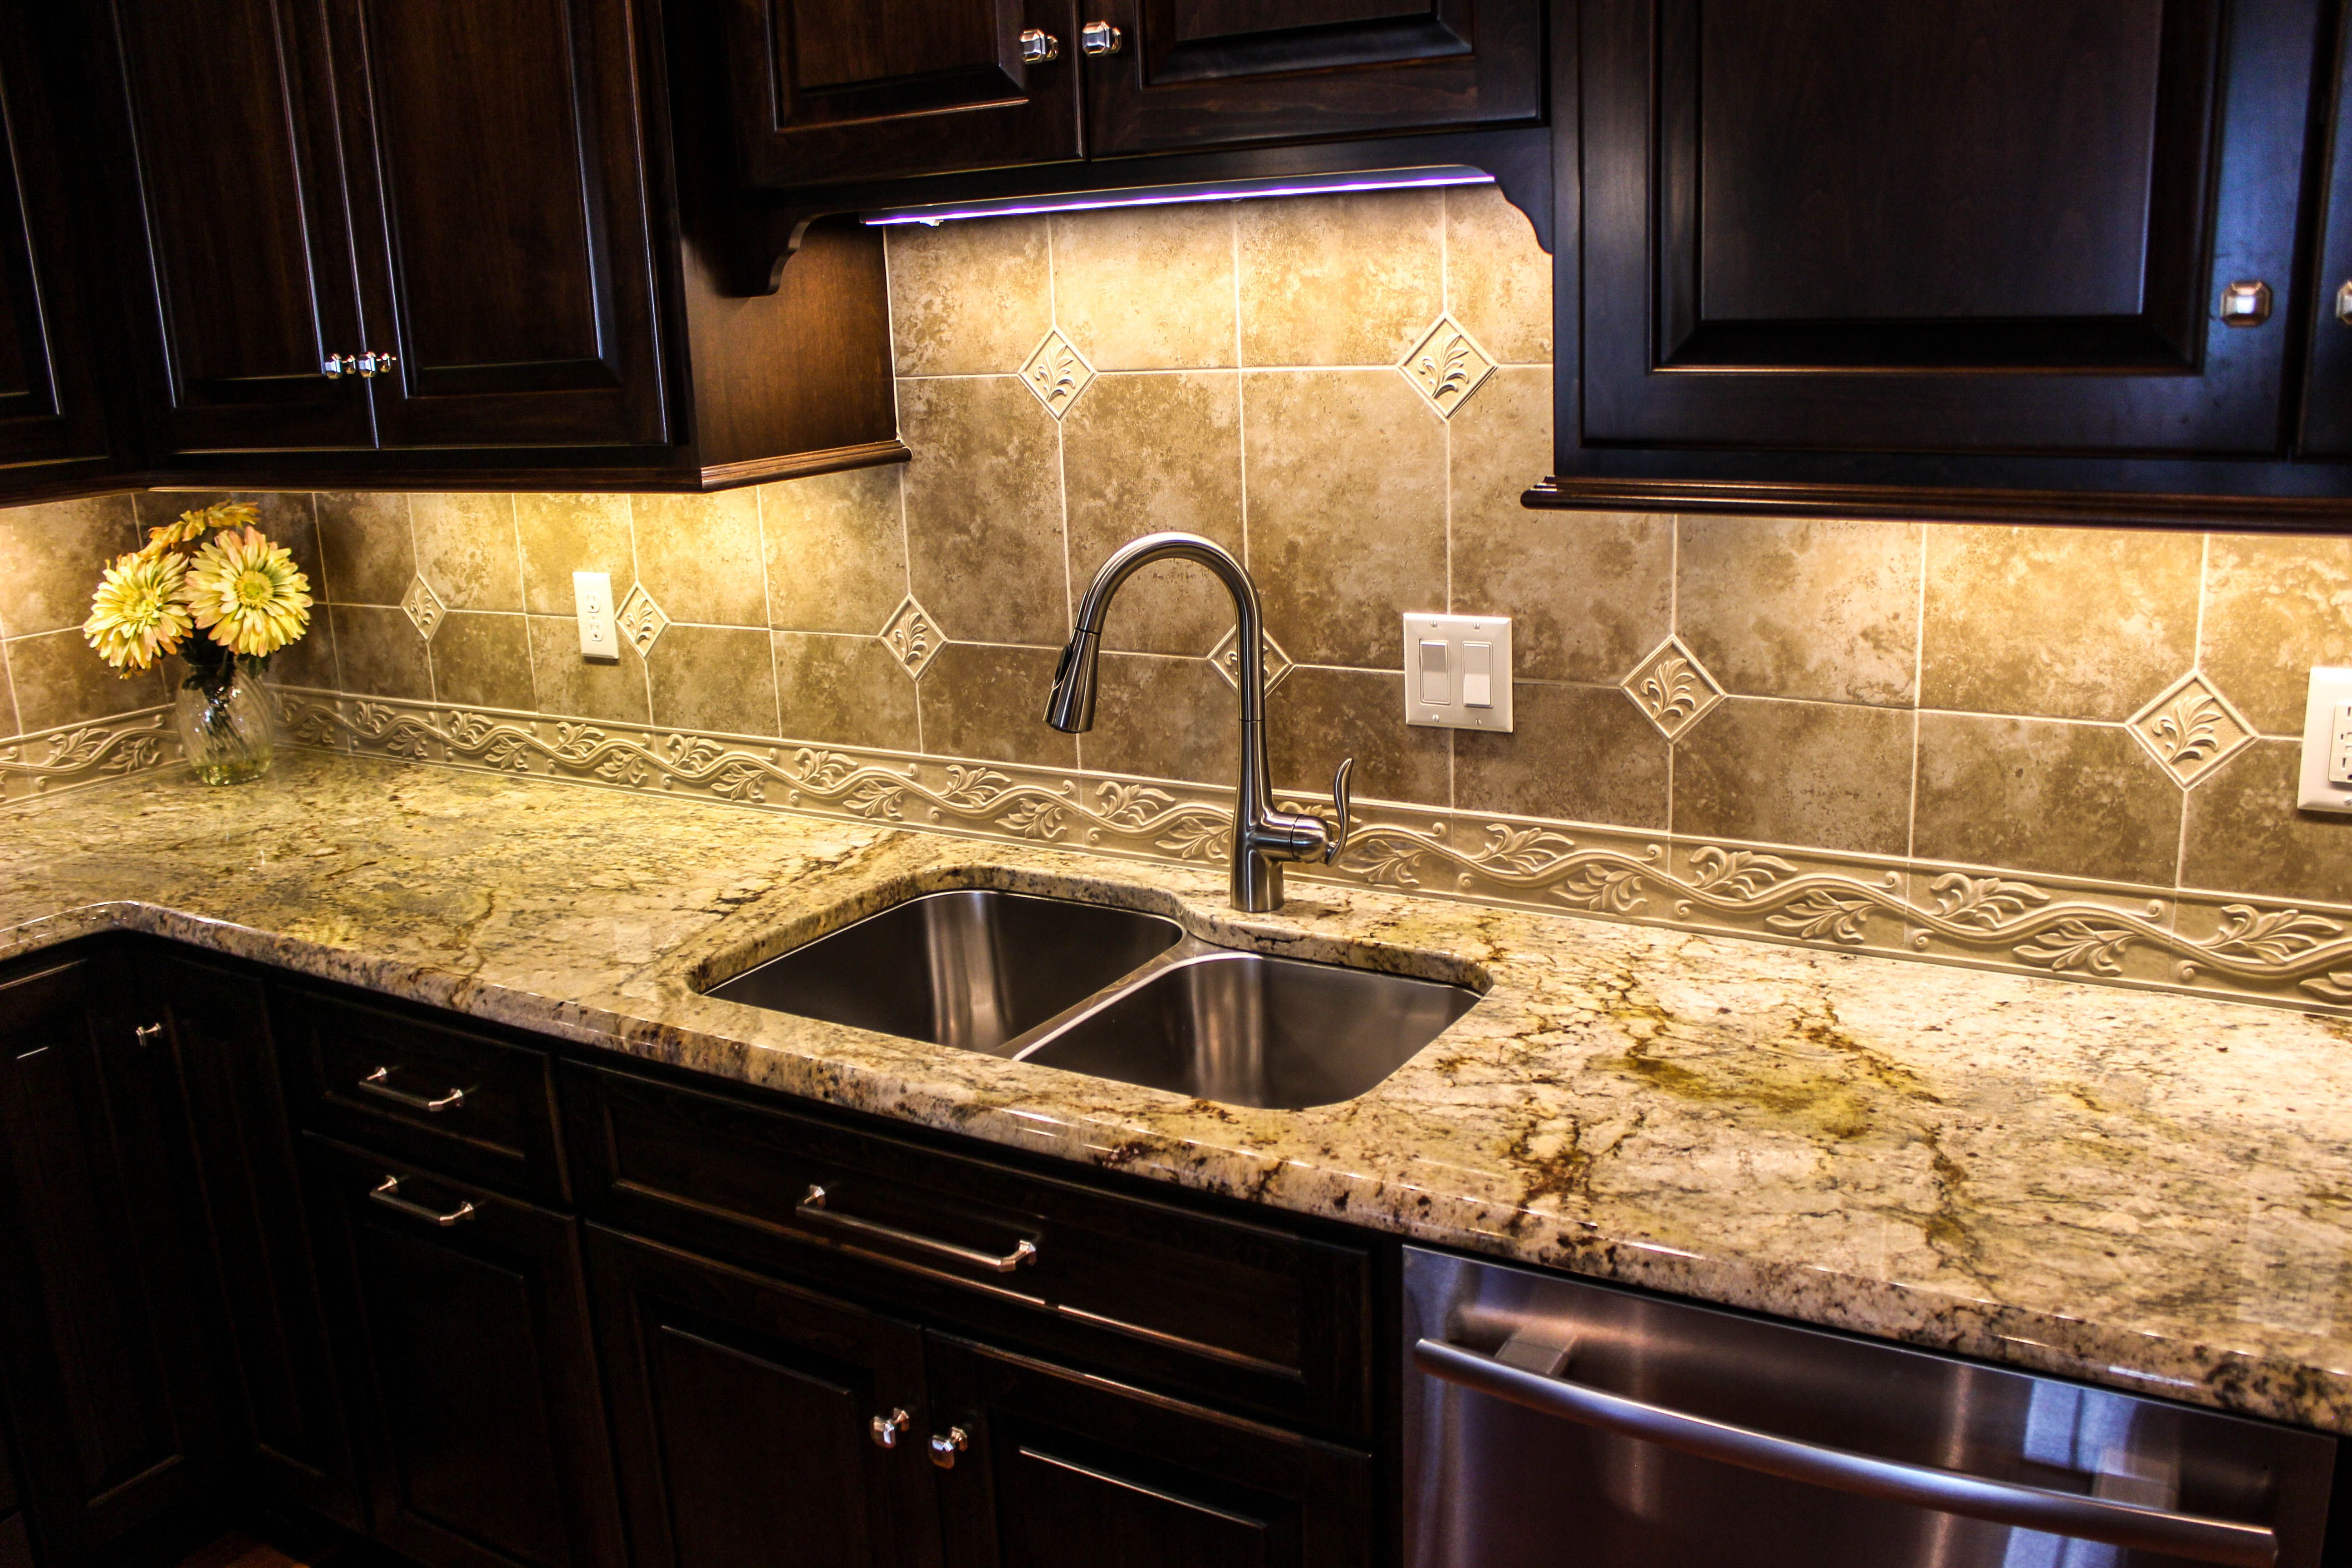 Mottled white granite countertop From a recent installation in the